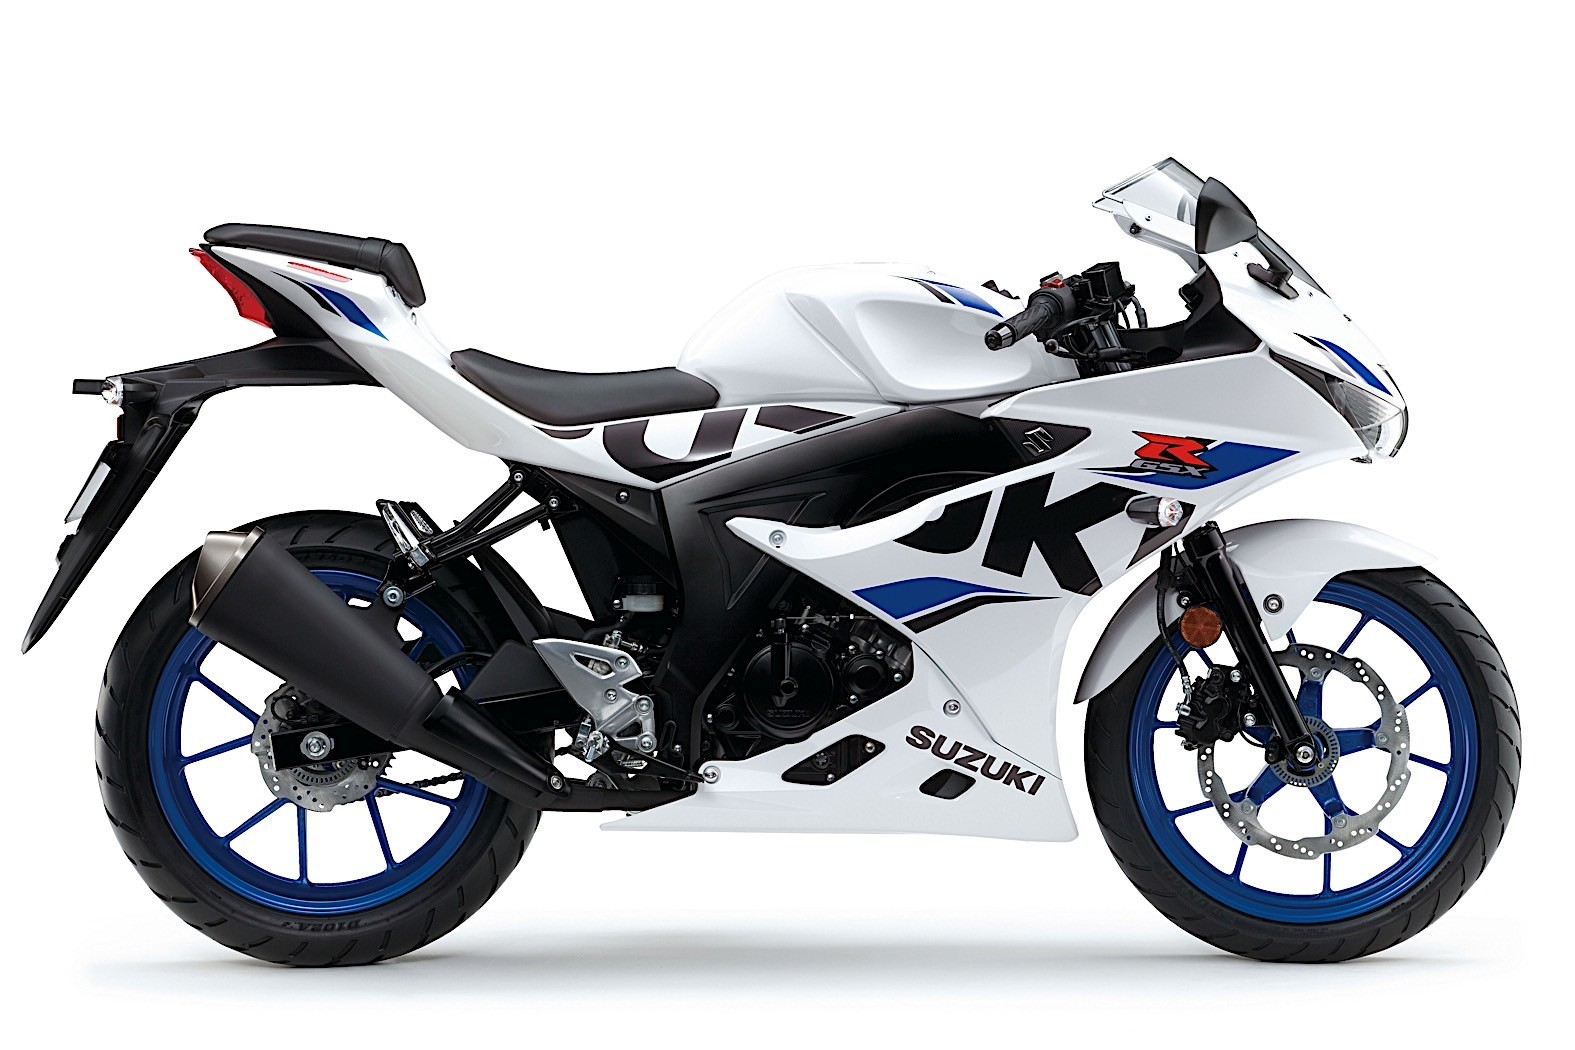 2019-suzuki-motorcycles-shine-in-new-colors-at-the-motorcycle-live-14